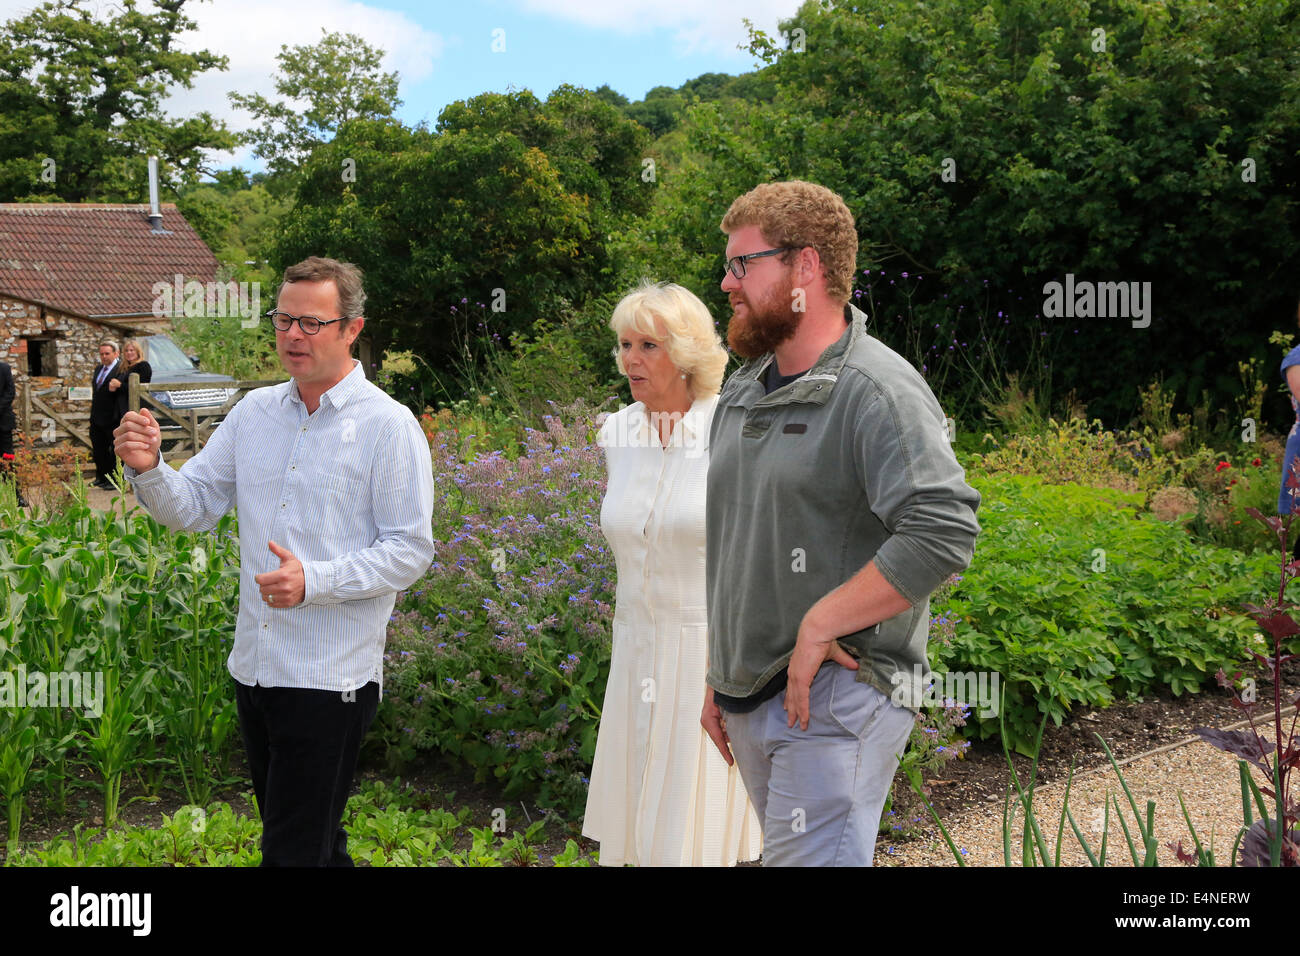 River Cottage, Axminster, Devon, UK. 15th July 2014. Prince Charles and Camilla, Duchess of Cornwall, tour River - Stock Image